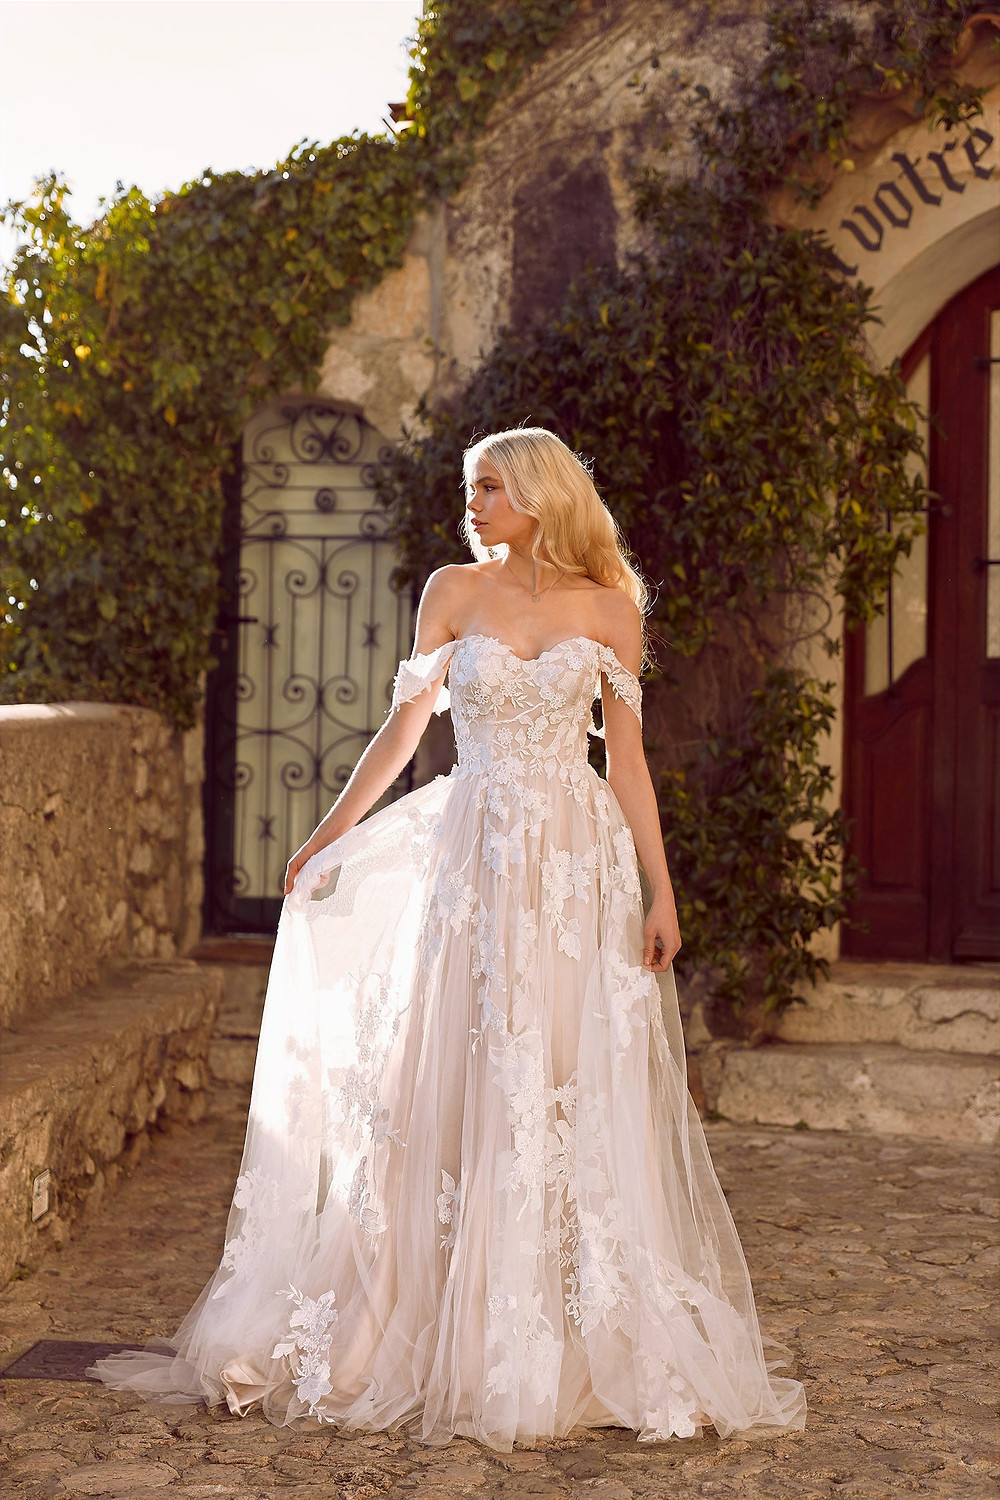 Model wearing a wedding dress in a courtyard